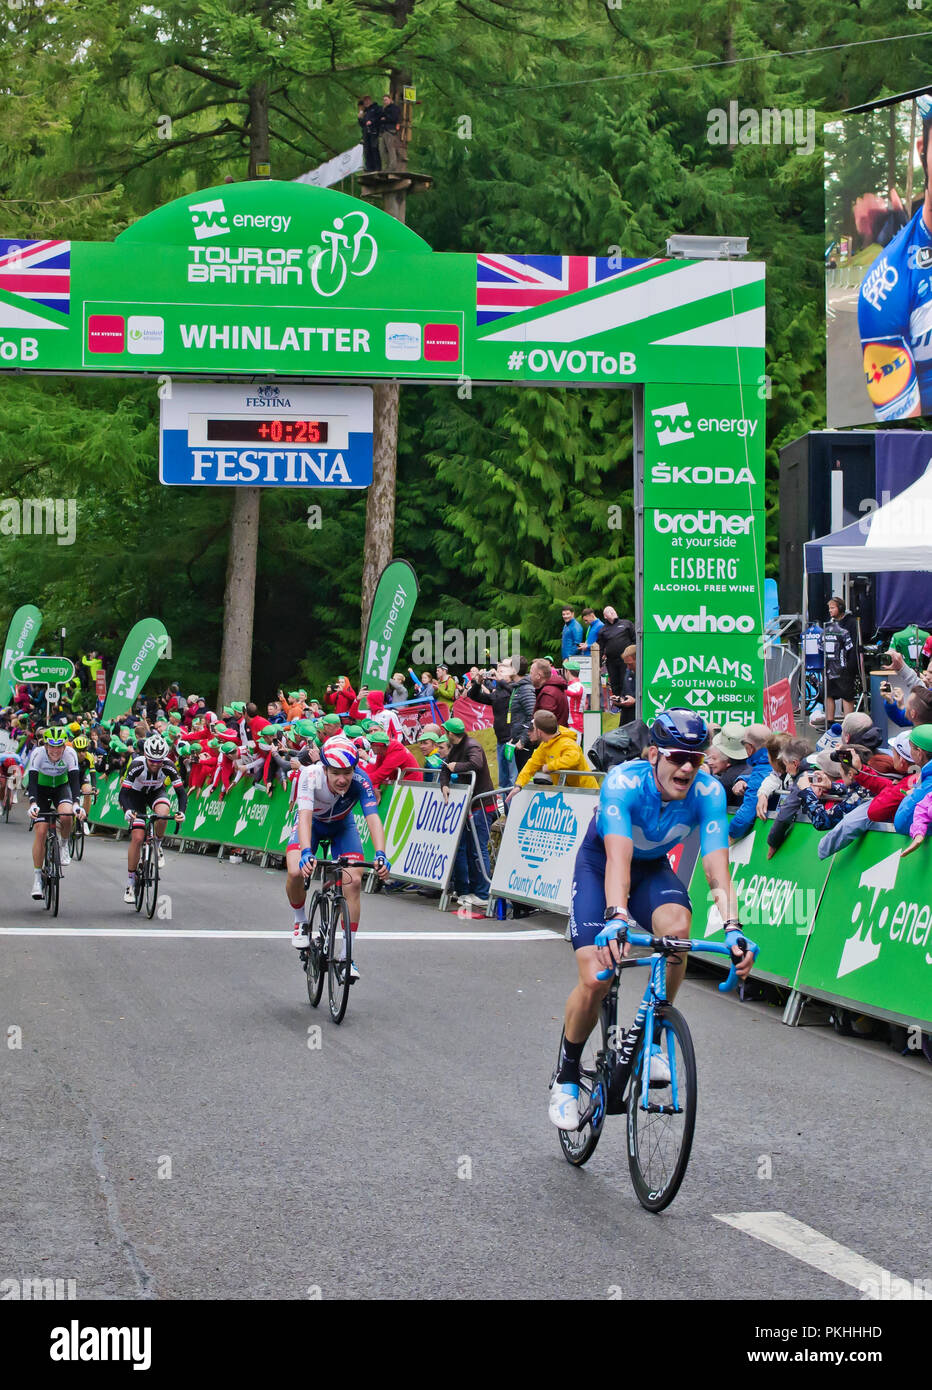 Finish of Stage 6 Tour of Britain Whinlatter 7 September 2018, Jasha Sutterlin 10th, Ethan Hayter 11th, Christopher Hamilton 12th, Scott Davies 13th. - Stock Image